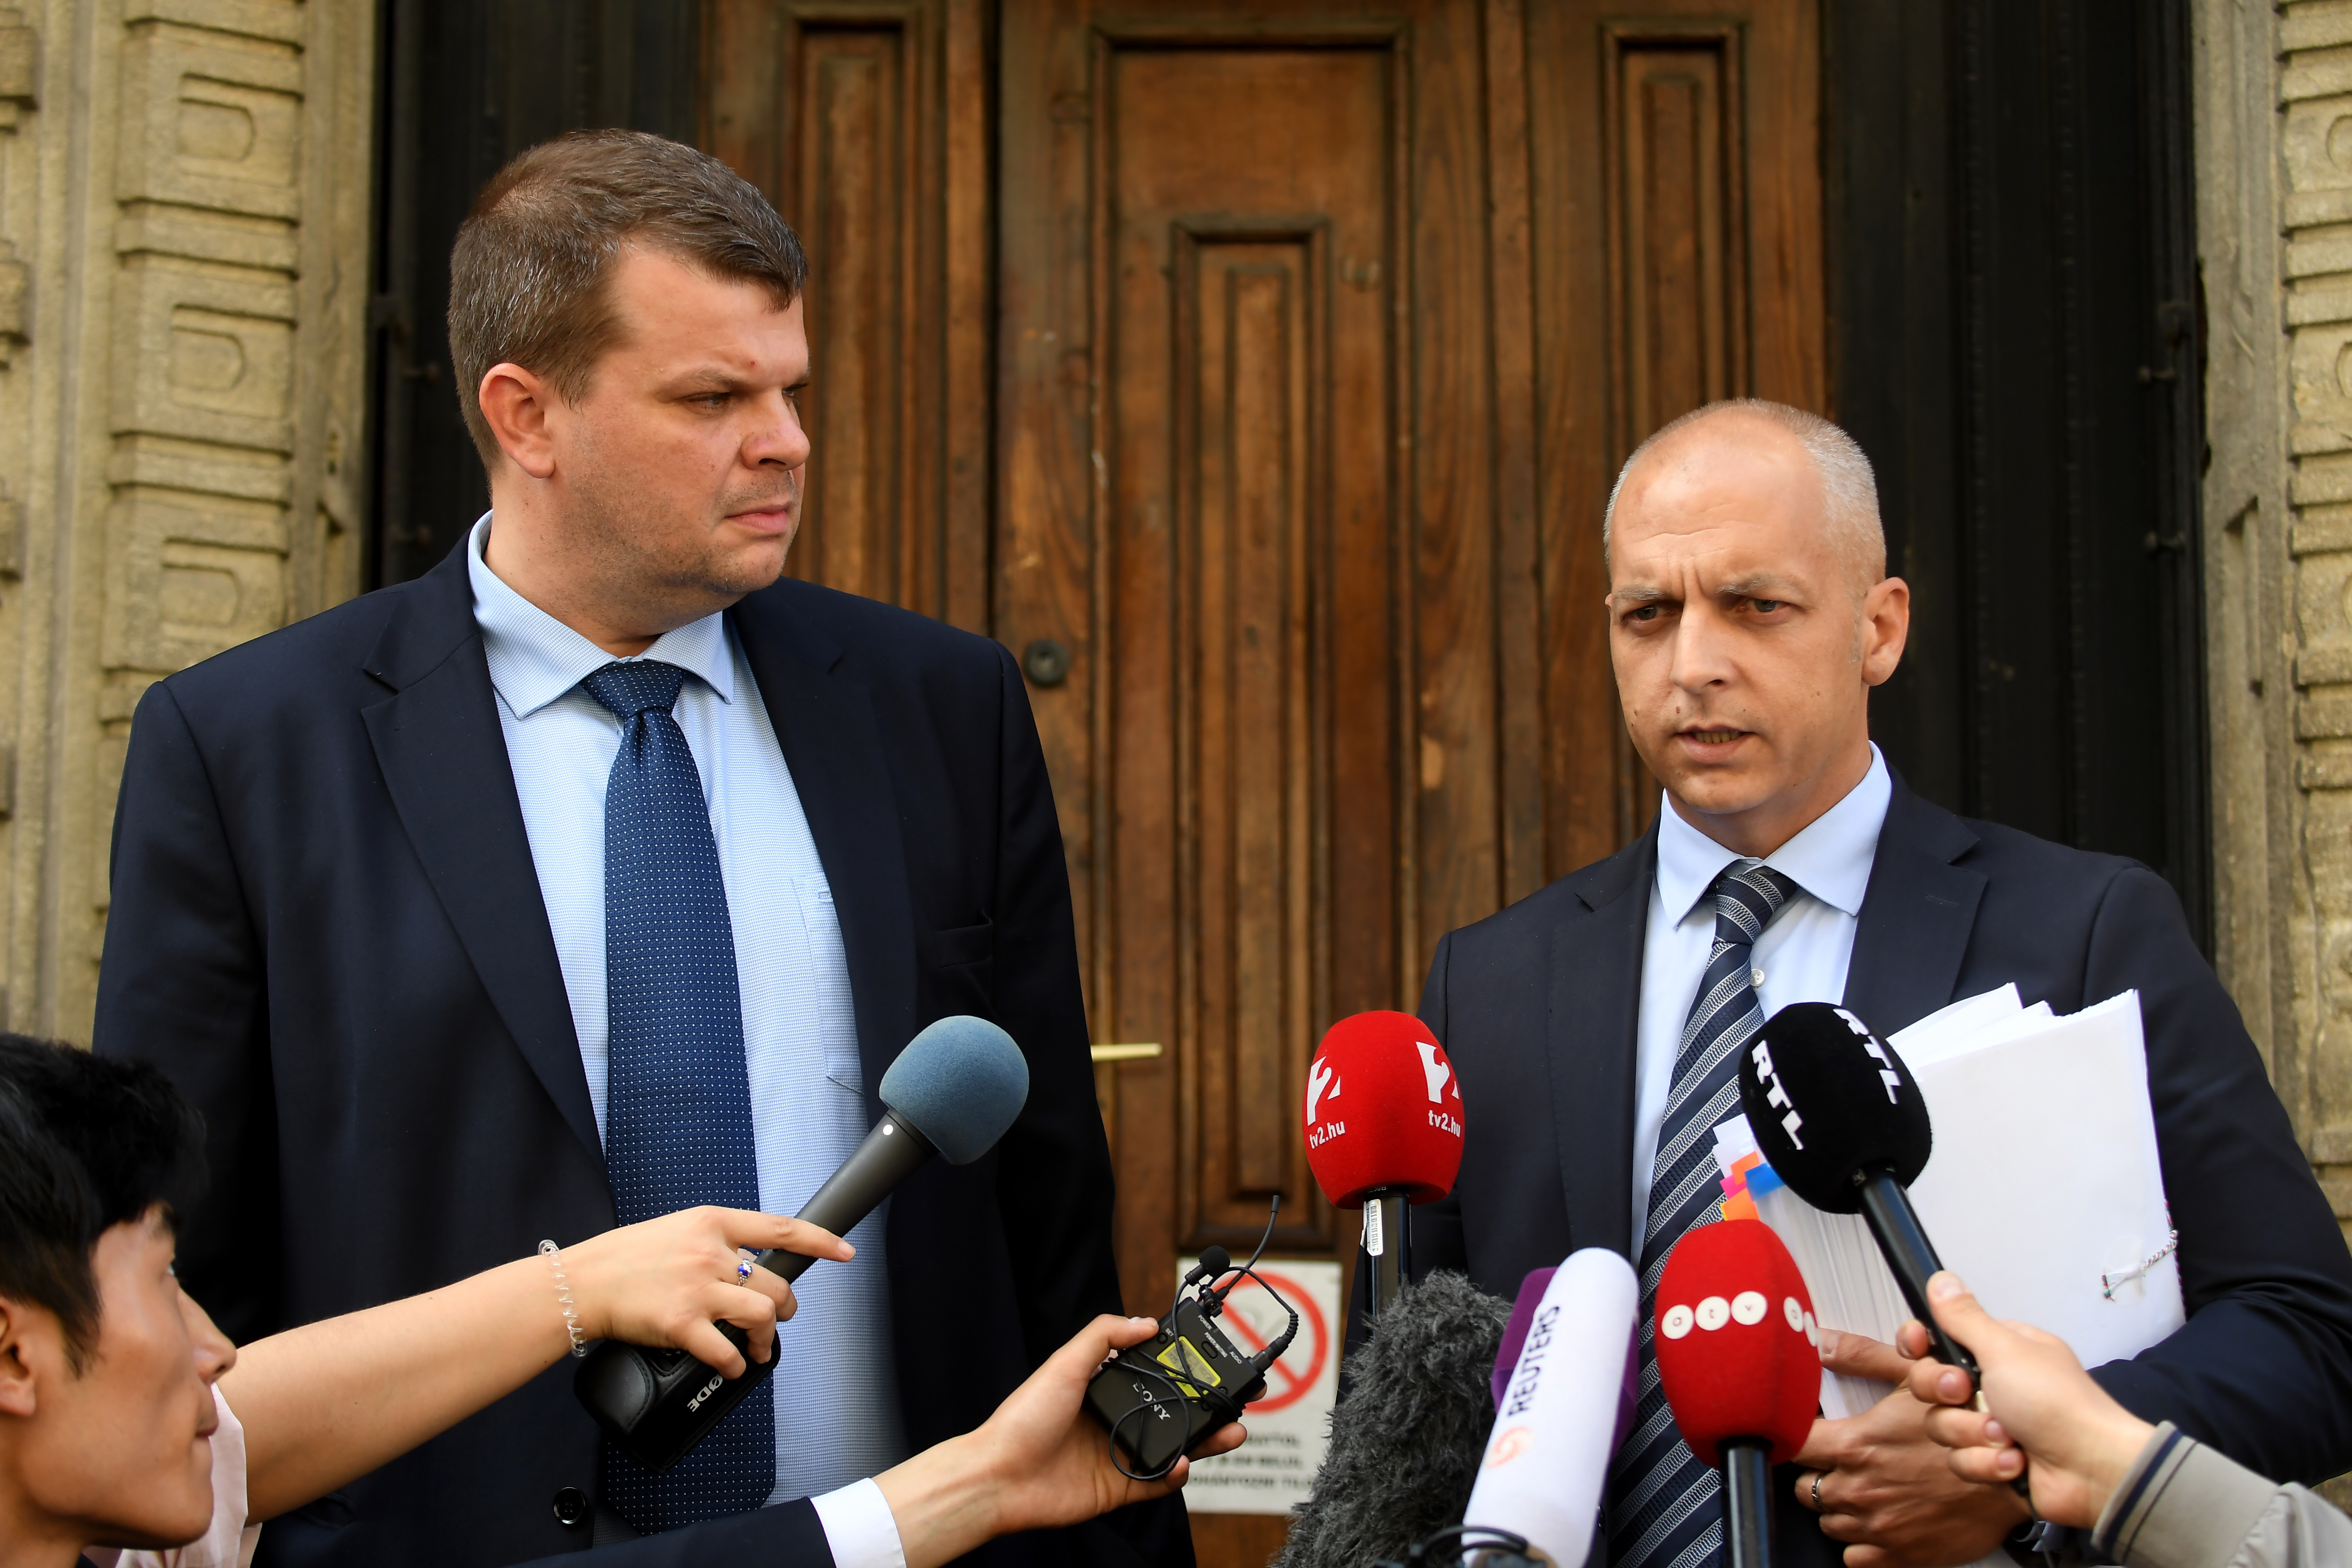 Gabor Elo, left, and Balazs Toth, attorneys for the ship captain charged in a fatal accident on the Danube, talk to reporters in front of the Budapest Court, June 1, 2019.